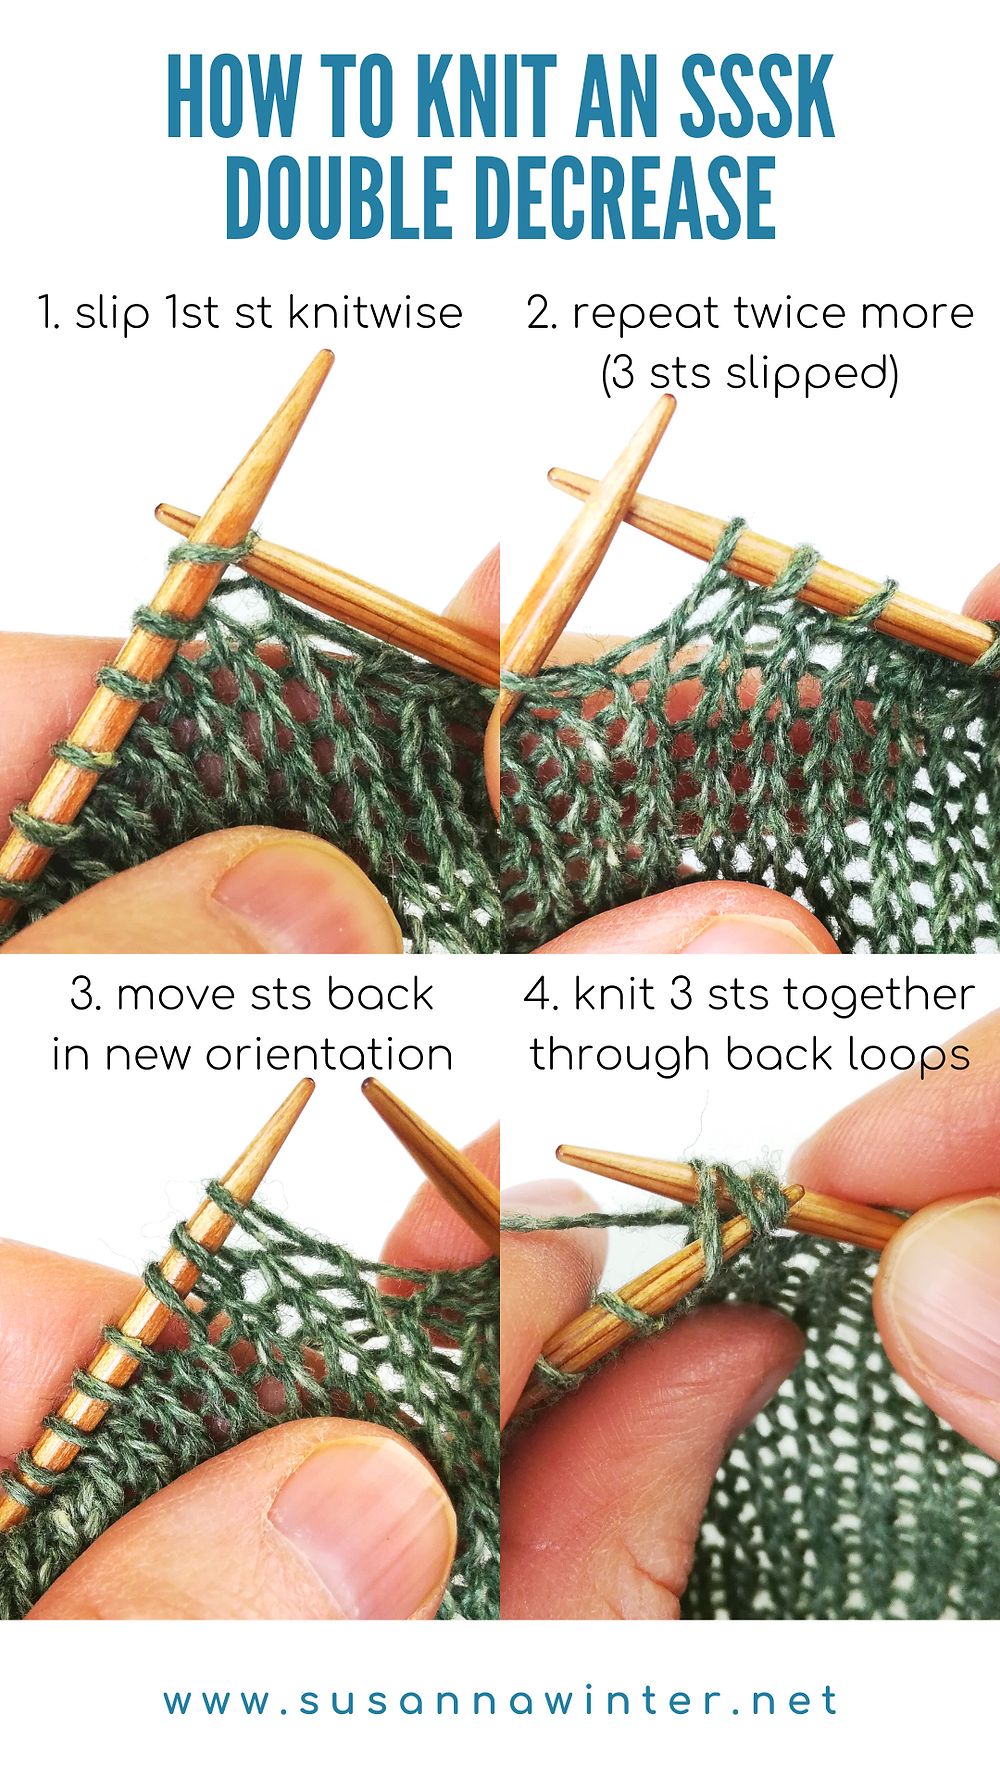 A four-step photo tutorial on how to an SSSK double decrease